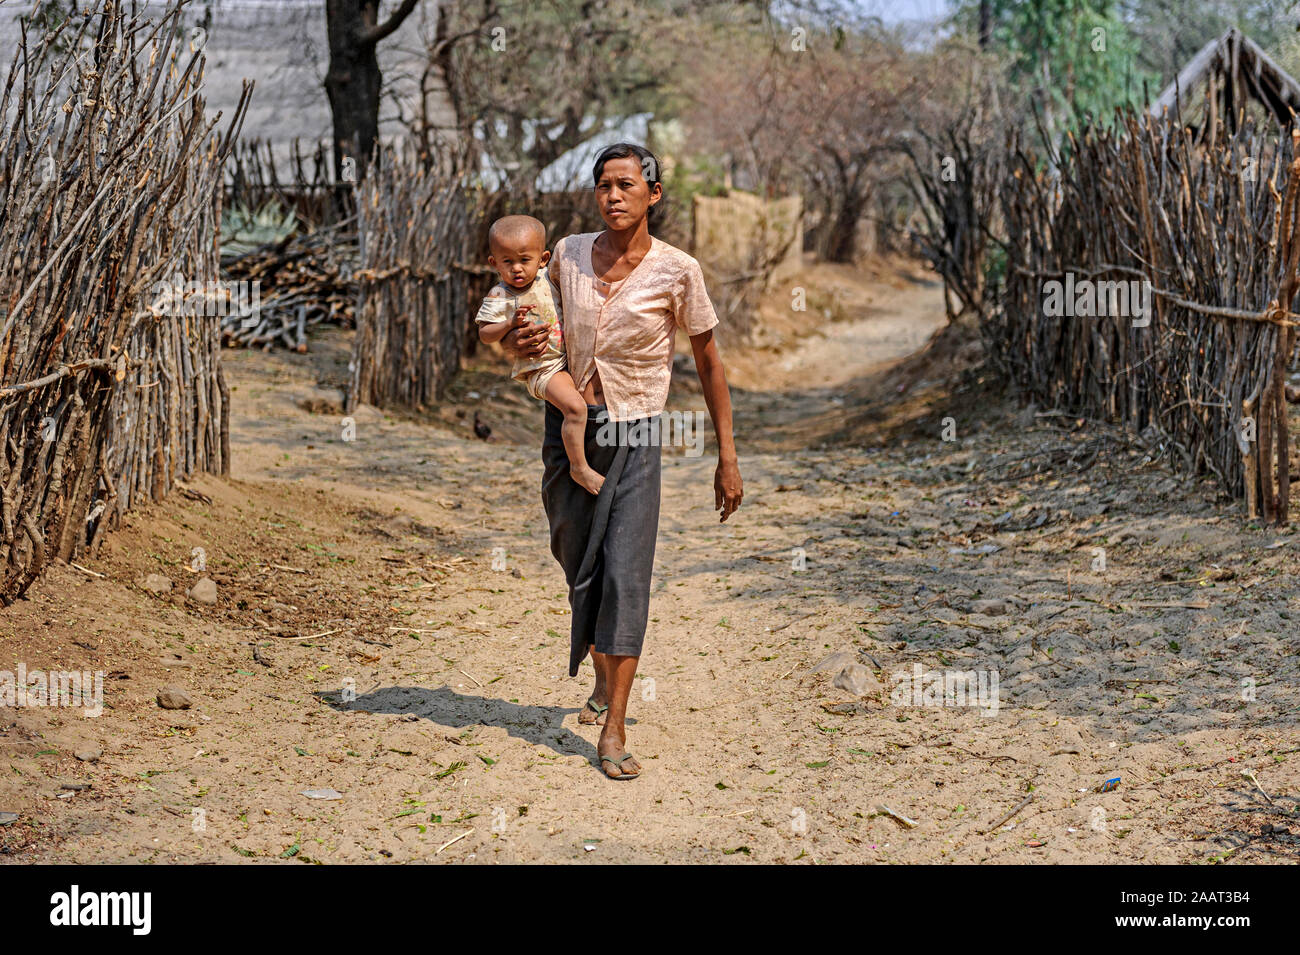 villagers-in-nyaung-u-the-mandalay-region-myanmar-burma-2AAT3B4.jpg